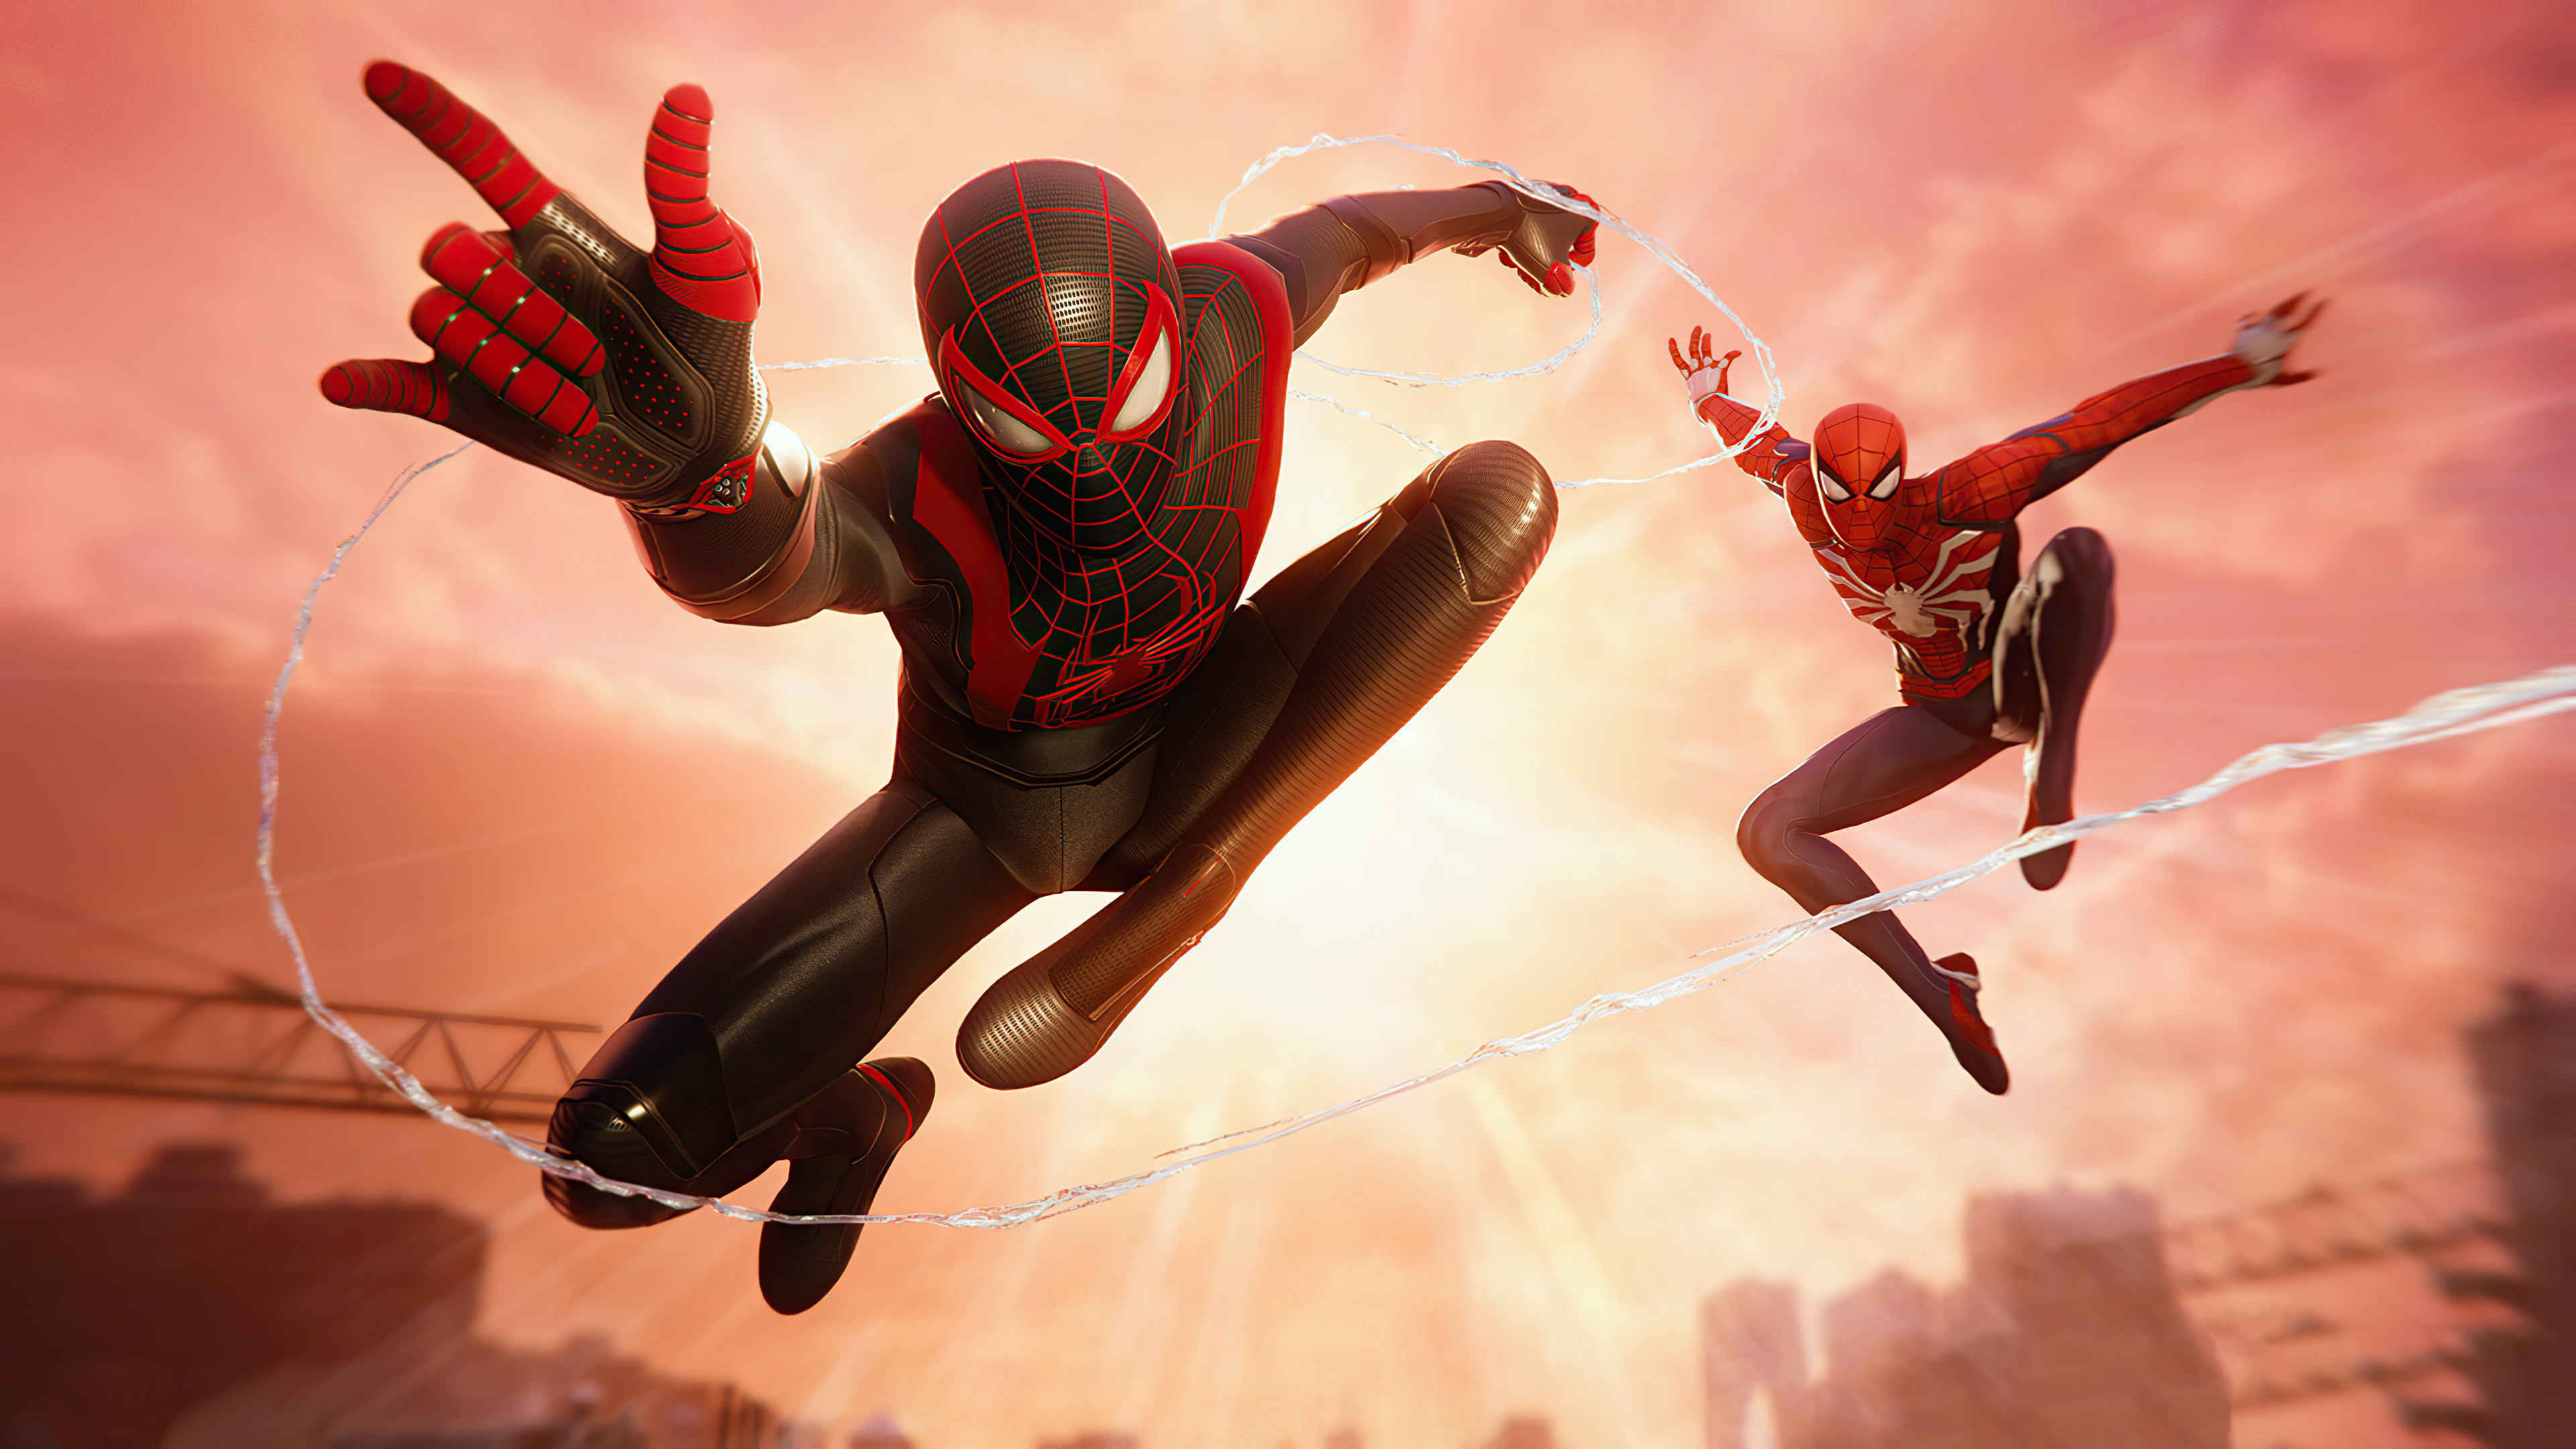 Wallpaper Miles Morales and Spiderman